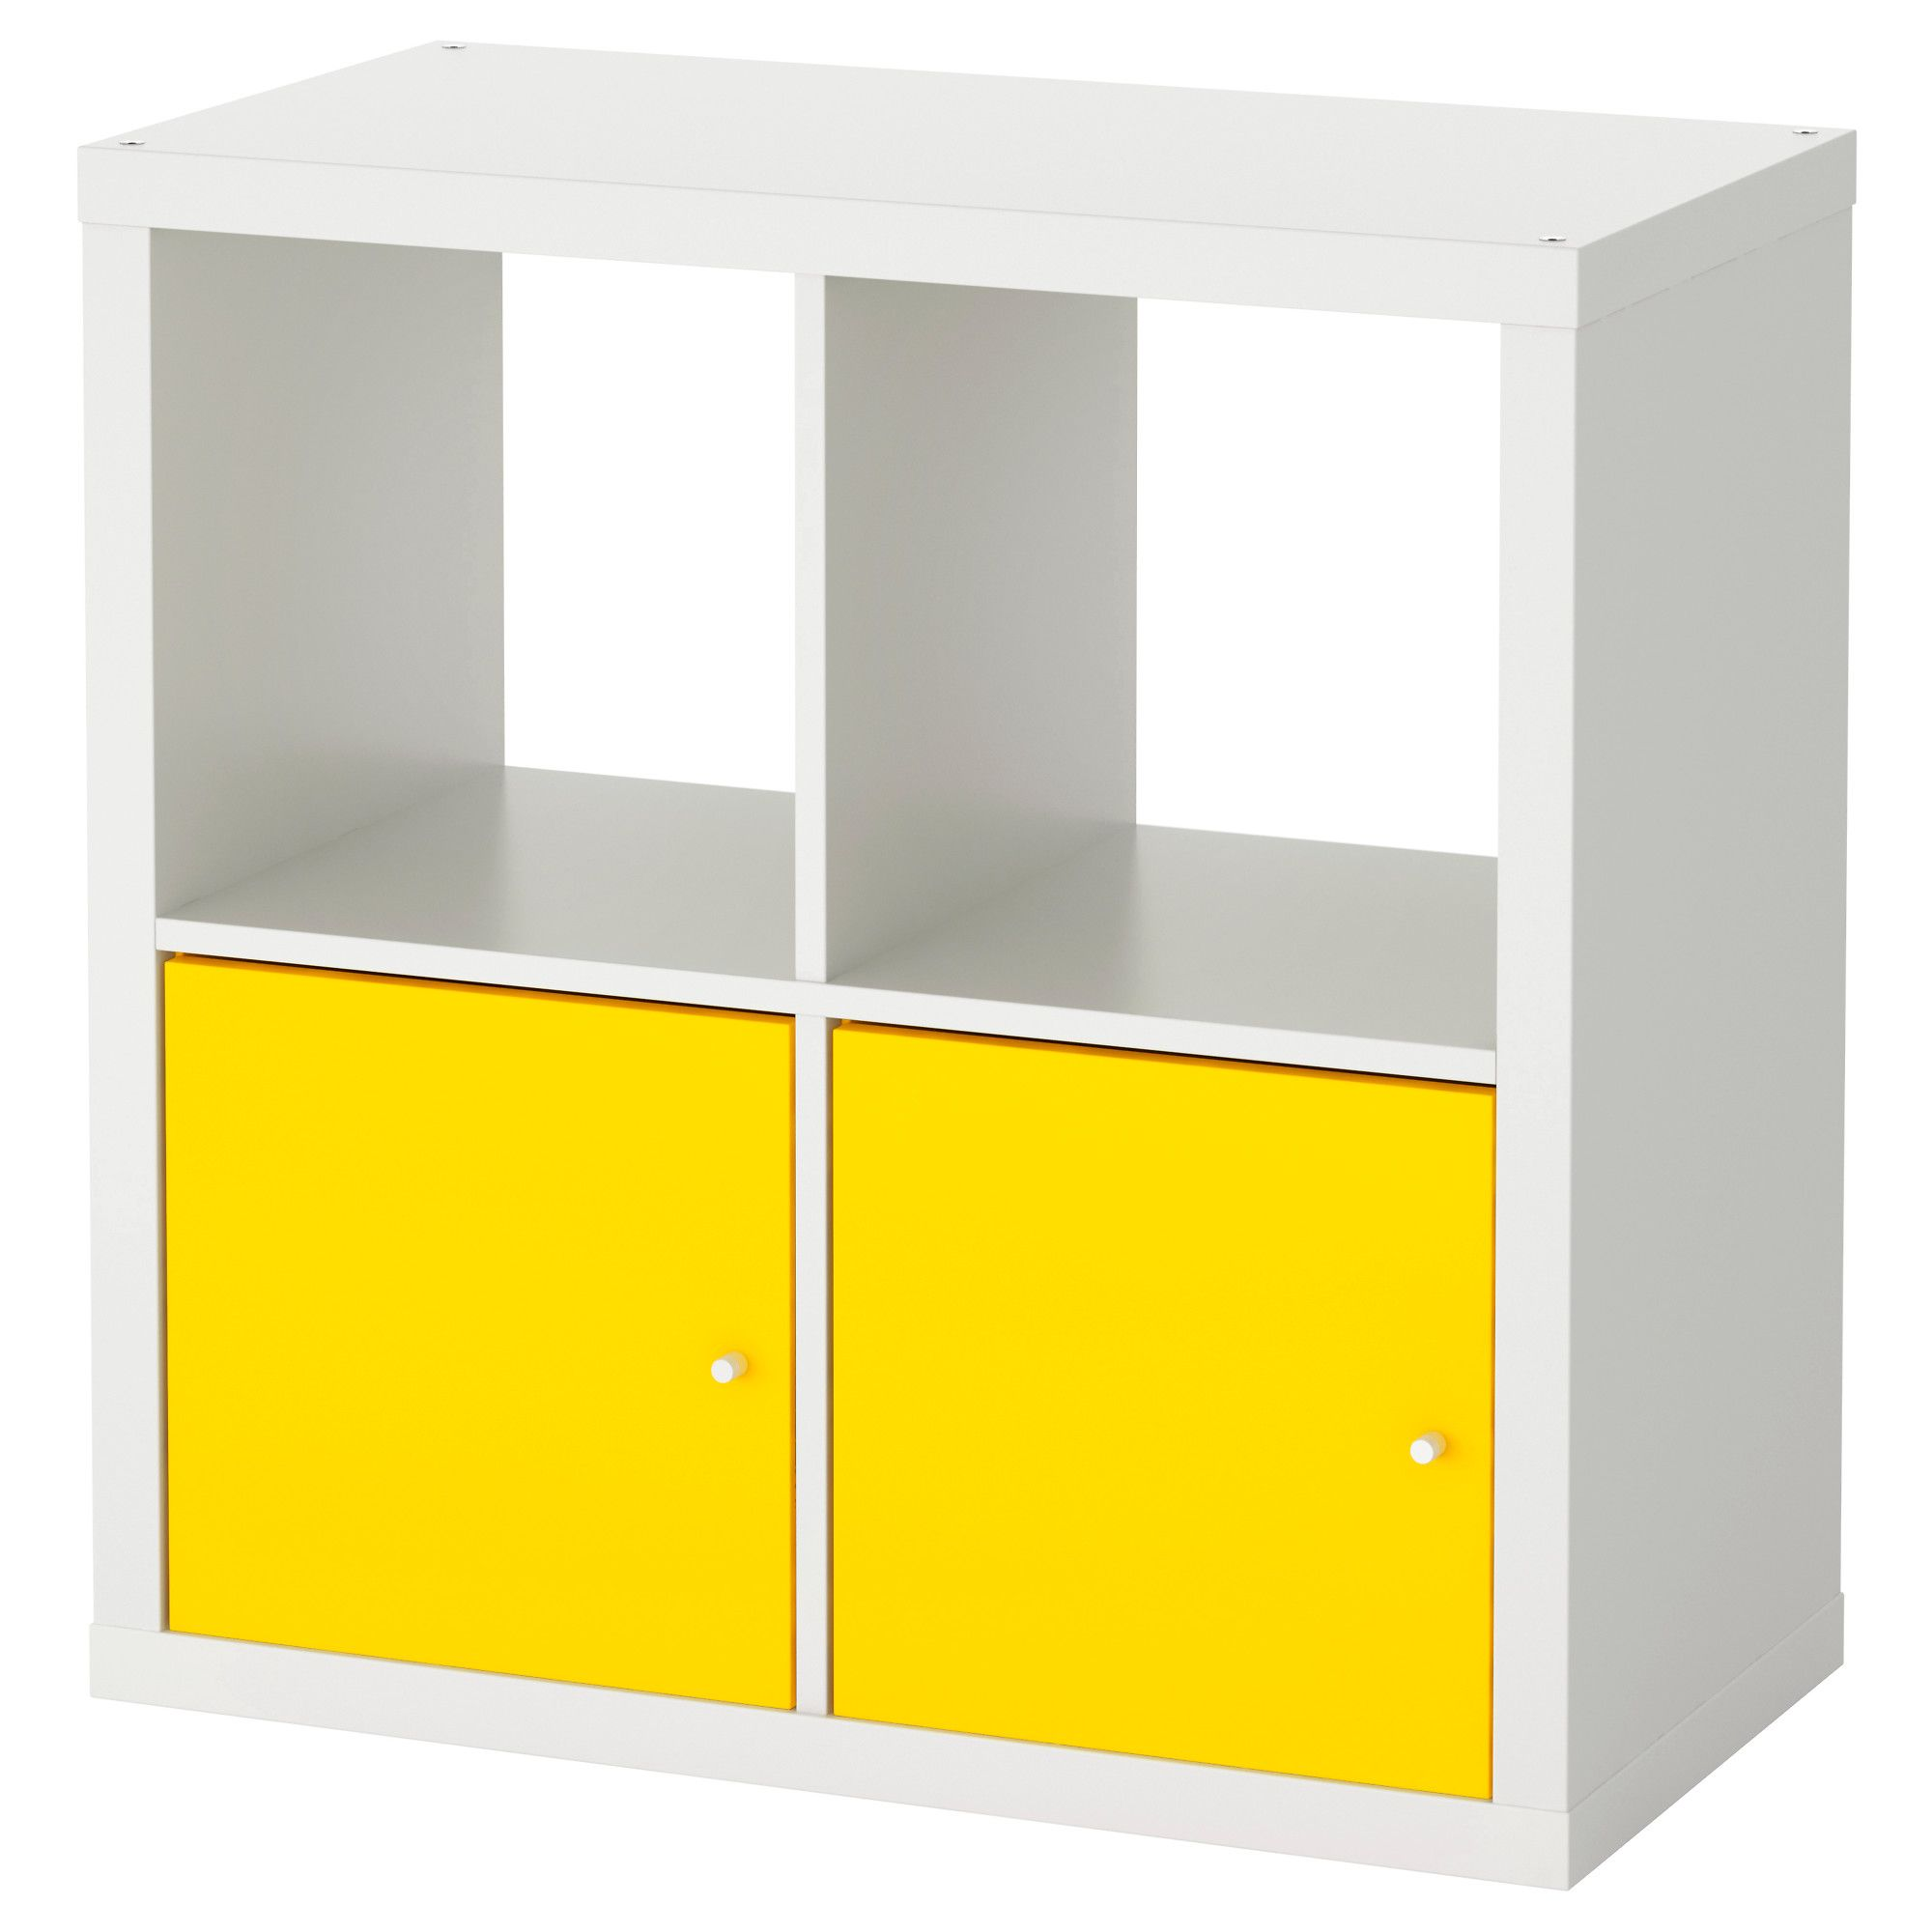 KALLAX Shelf unit with doors white yellow